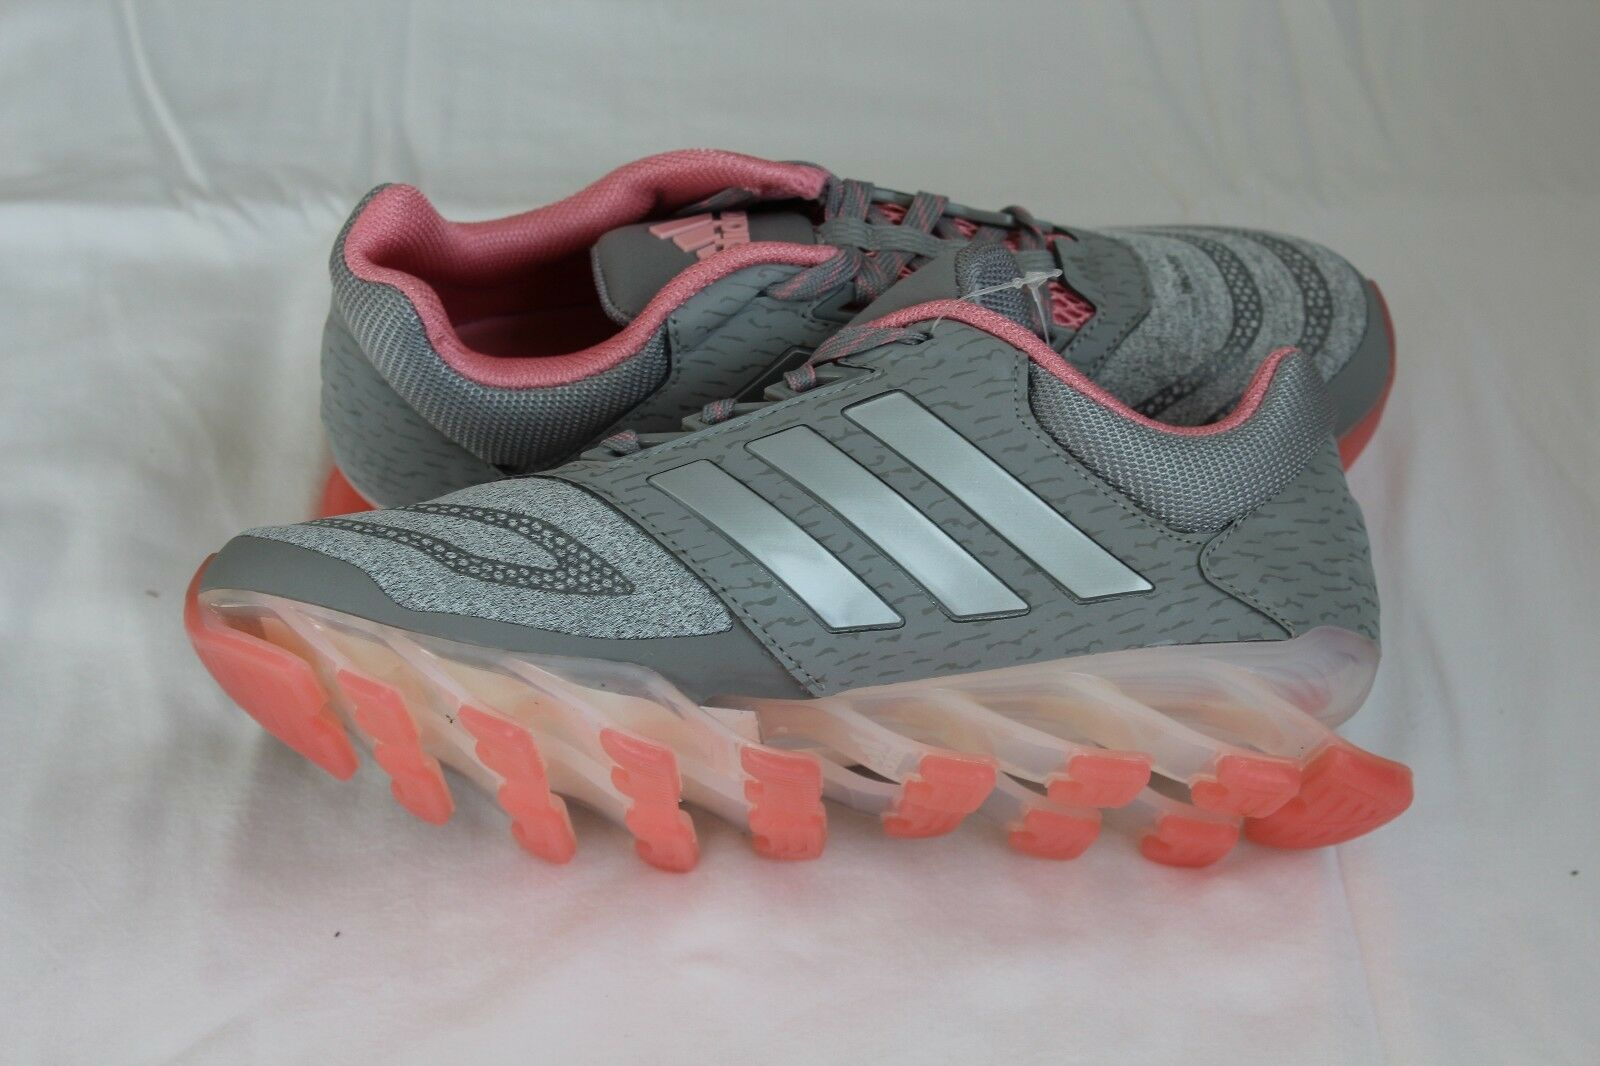 ADIDAS LADIES SPRINGBLADE DRIVE 2 6 TRAINERS UK 3.5 - 6 2 622d5a